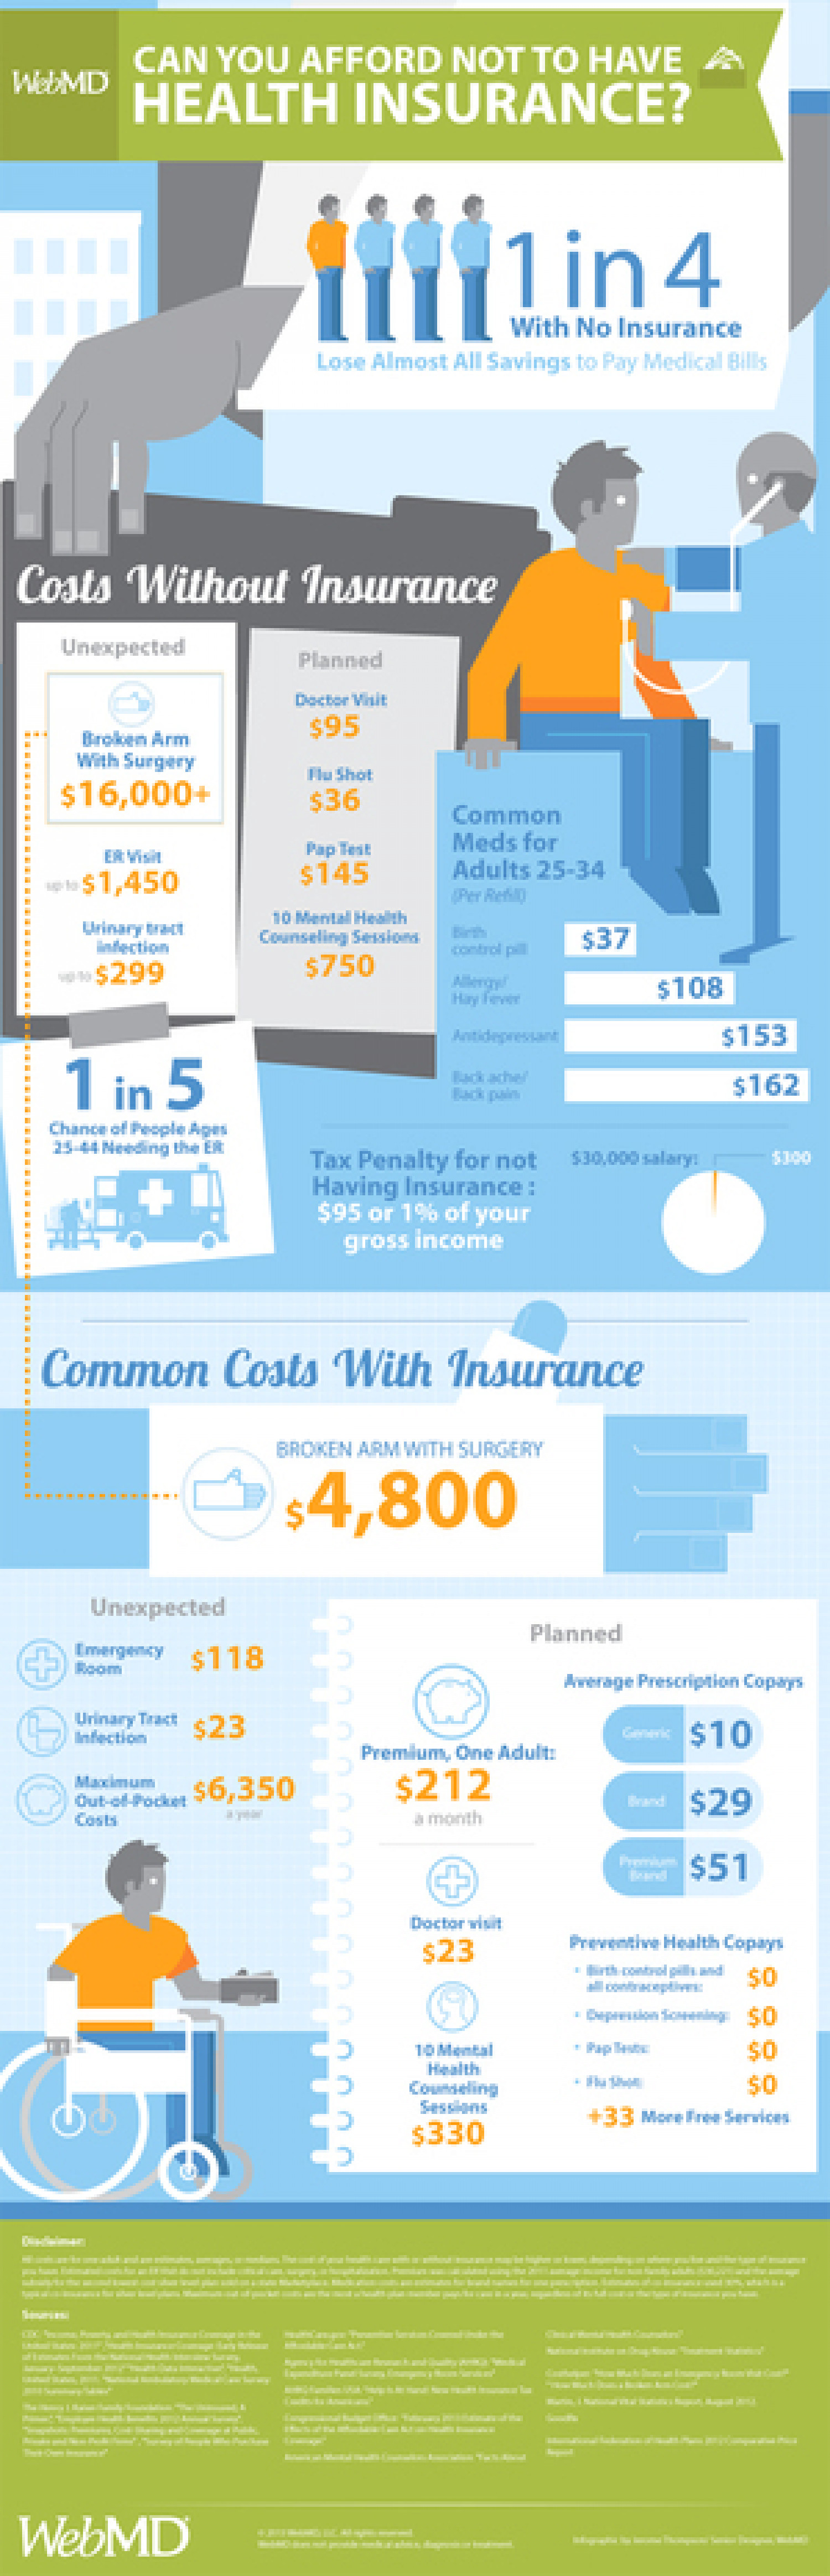 Can You Afford Not To Have Health Insurance? Infographic